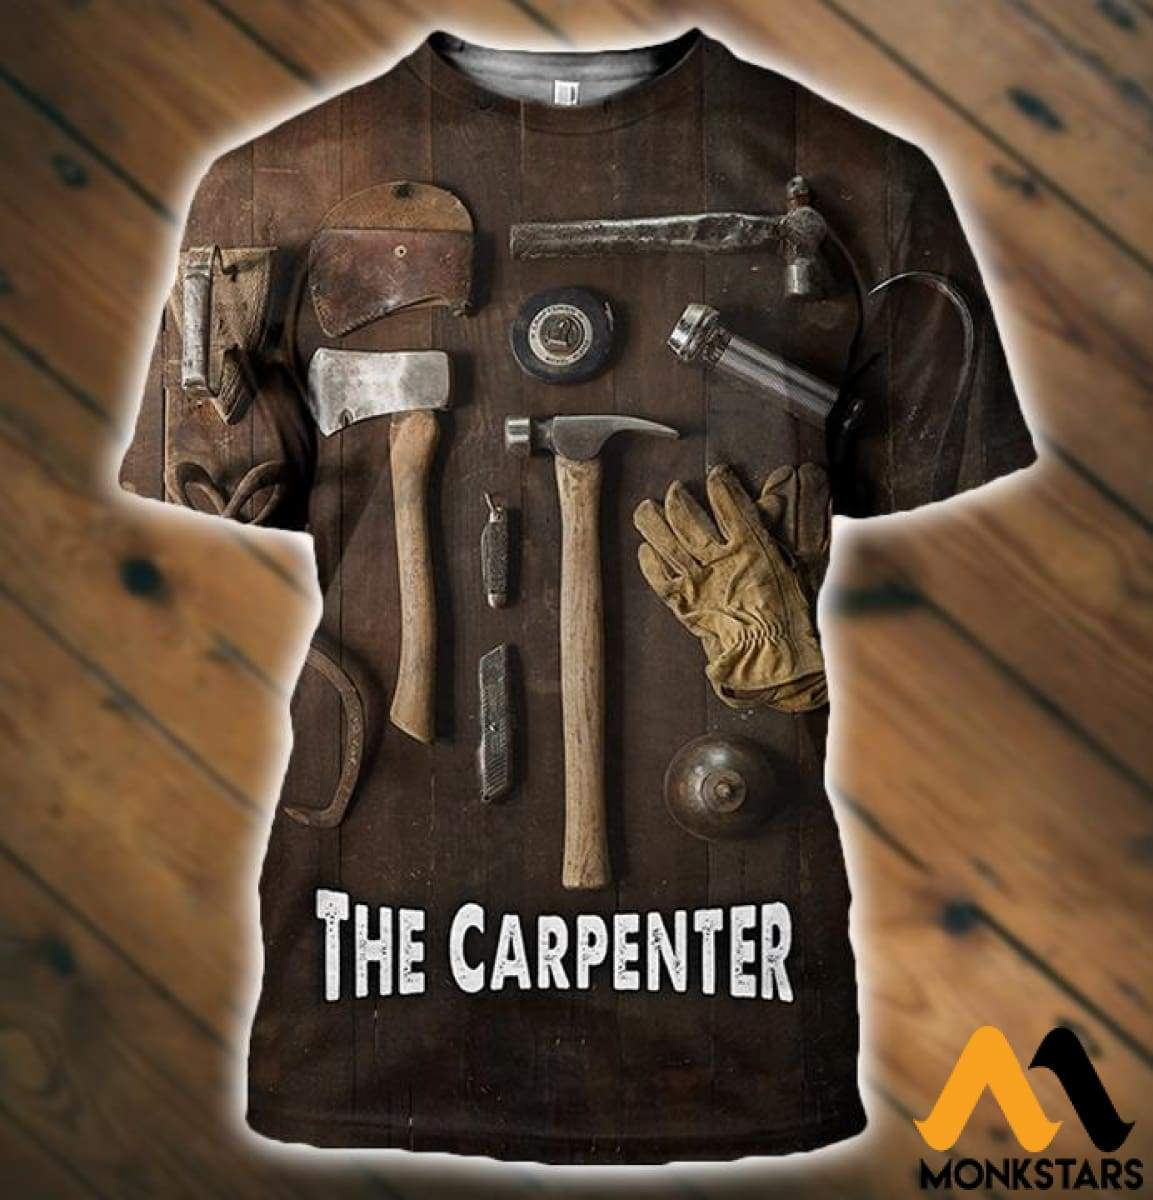 3D All Over Printed Carpenter Tools T-Shirt Hoodie Sntk020503 / Xs Clothes